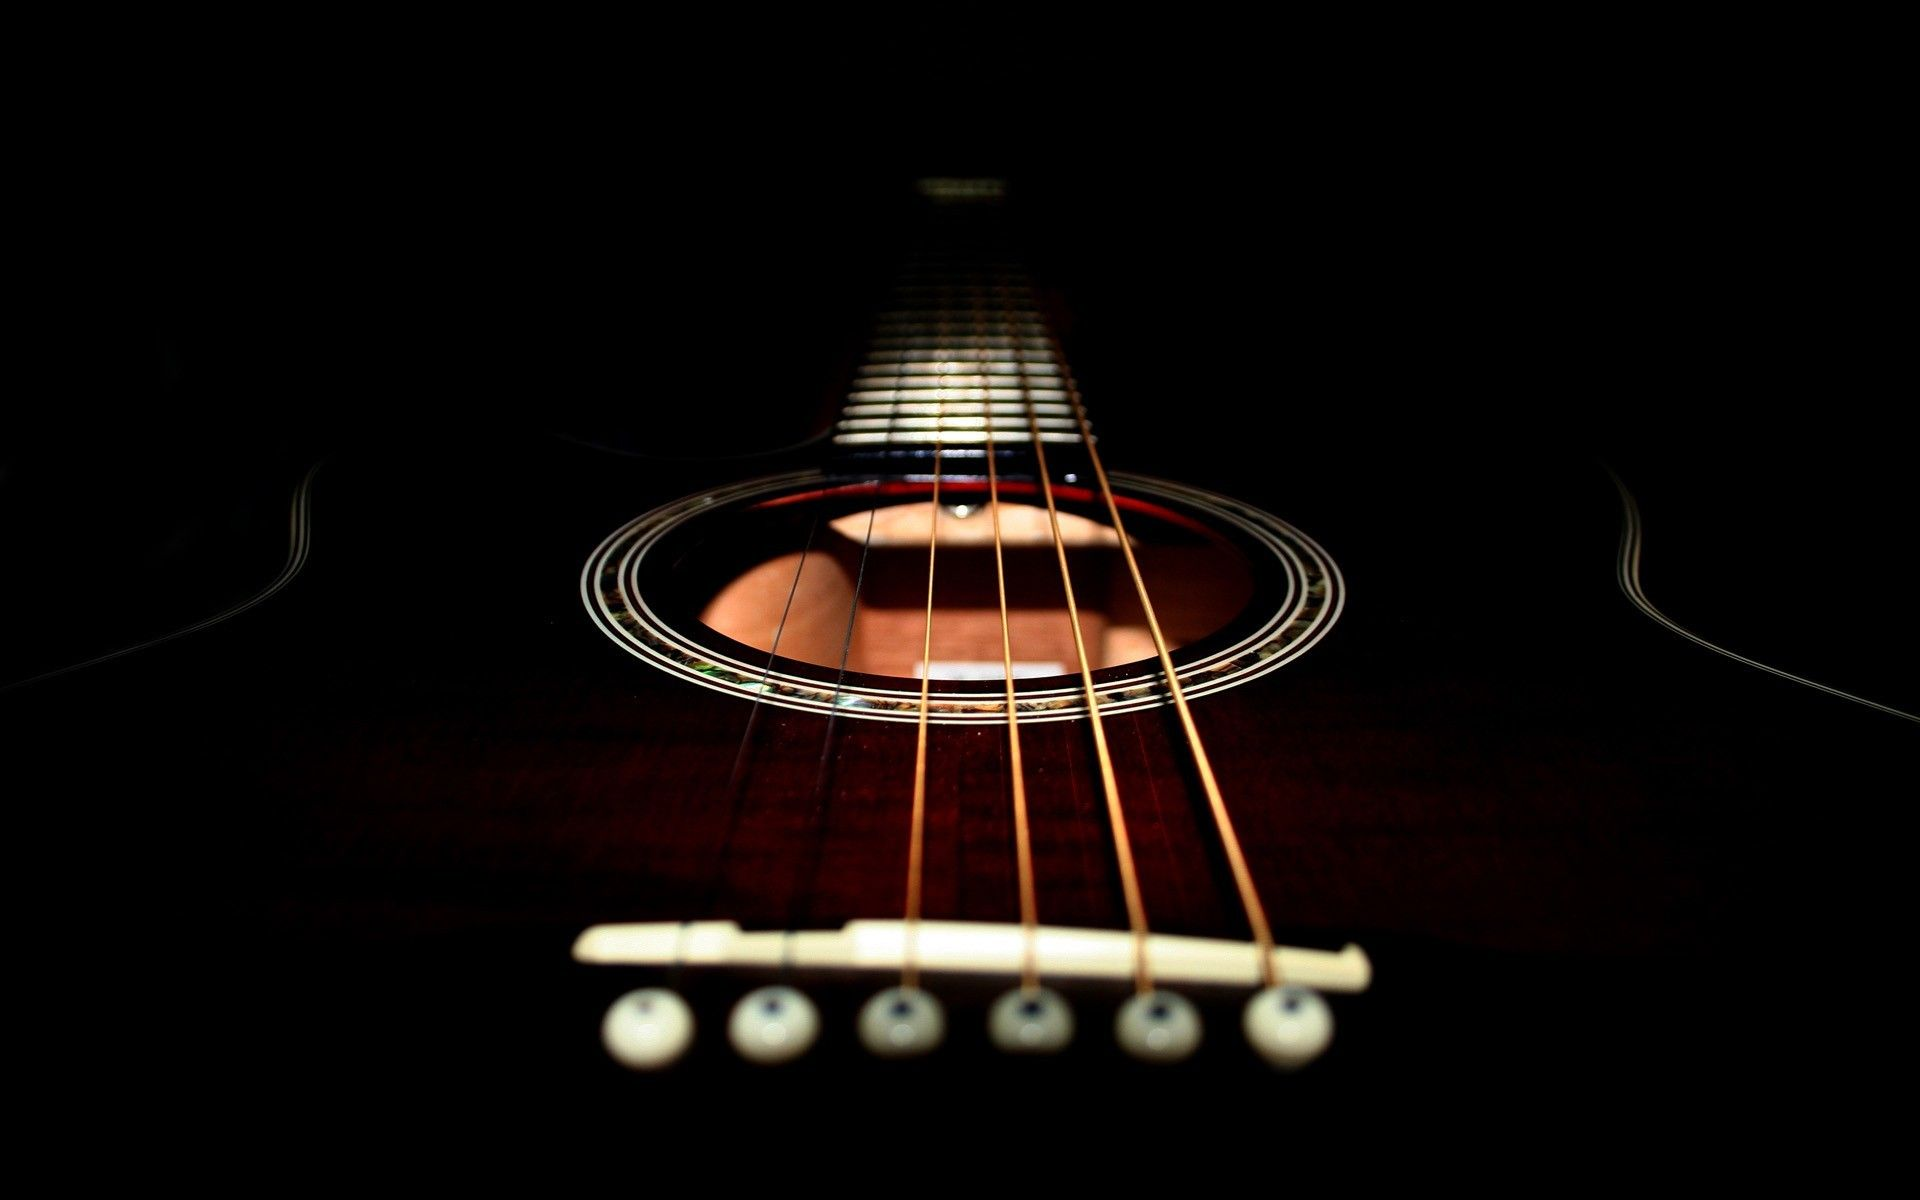 Acoustic Guitar Wallpapers Full HD wallpaper search